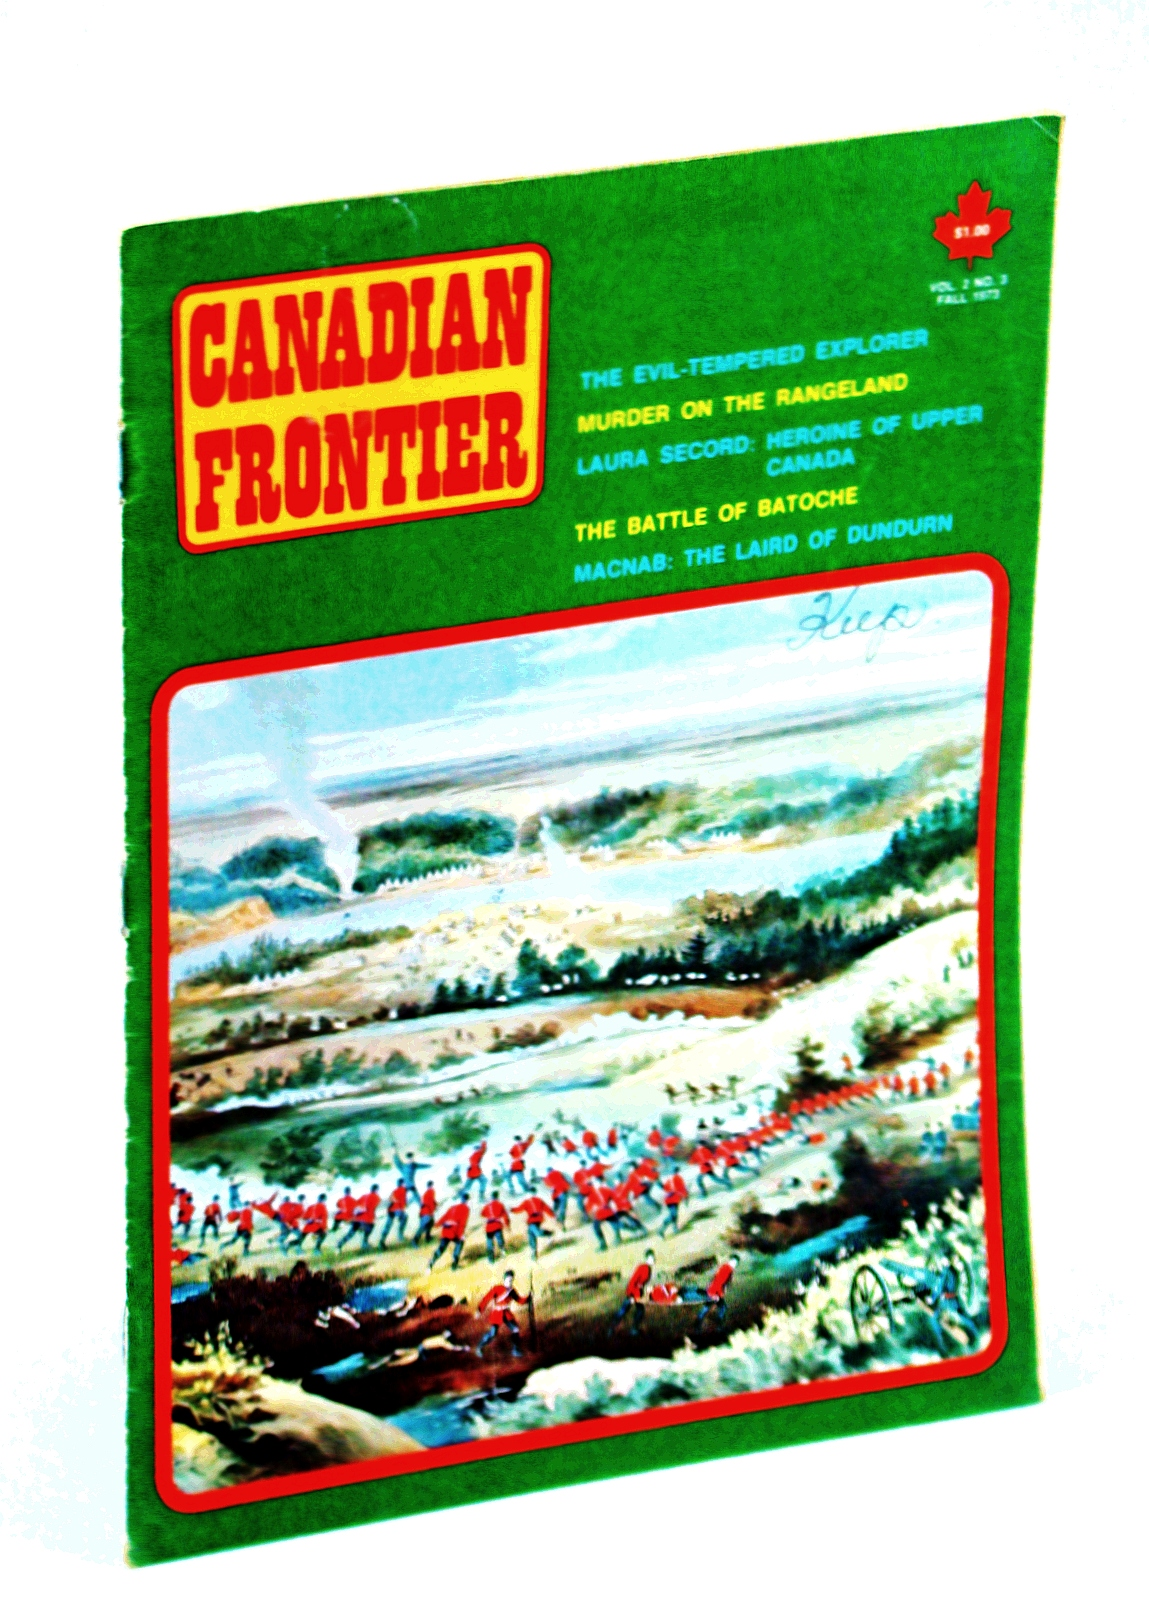 Image for Canadian Frontier Magazine, Volume 2, Number 3, Collector's No. 6, Fall 1973 - Laura Secord